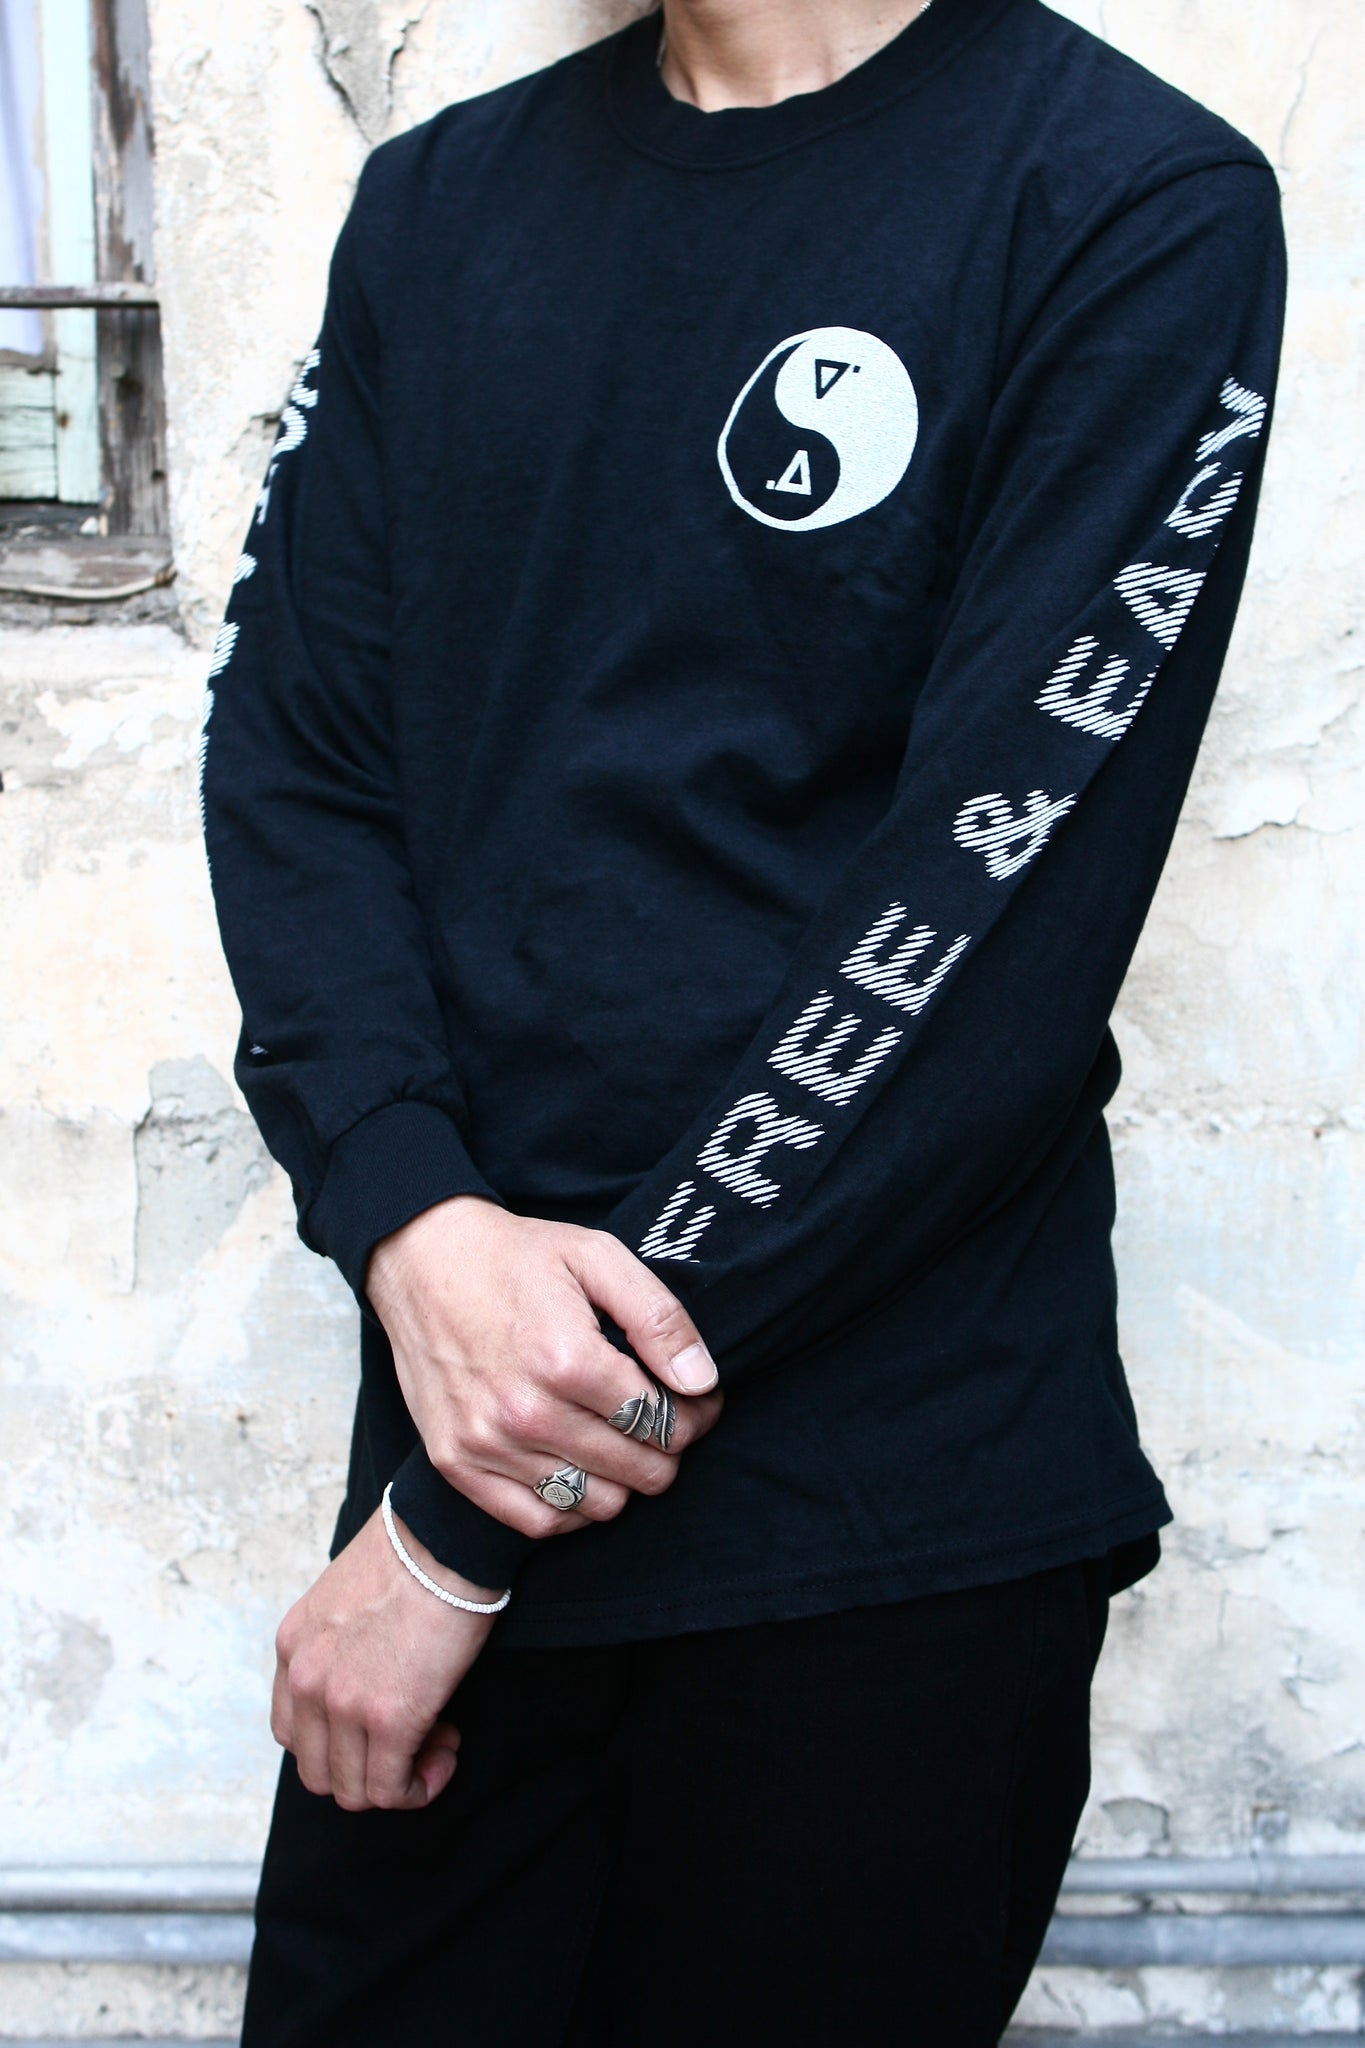 Free & Easy X RGT.A / Exploration Shirt Black